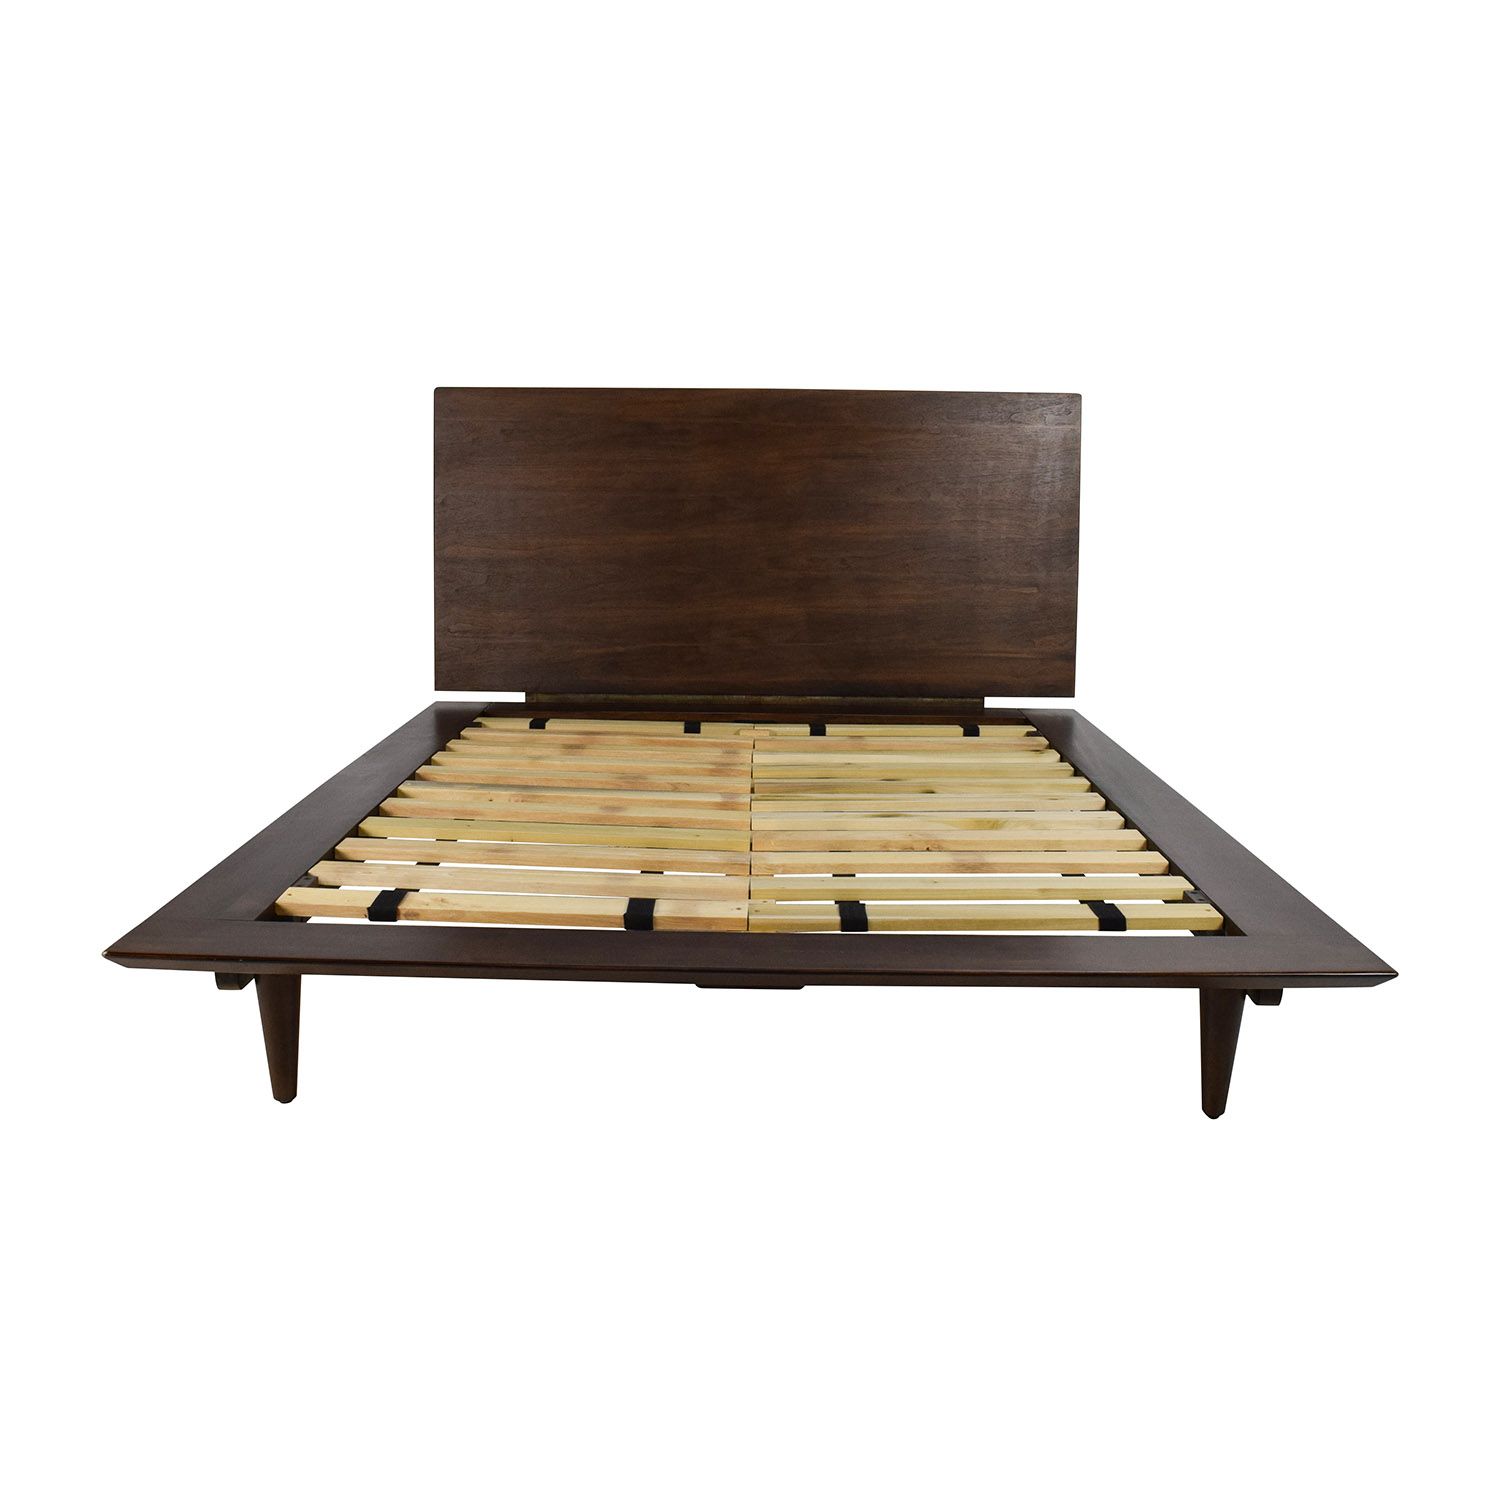 86 off full size brown wood bed frame beds for Full size bed frame